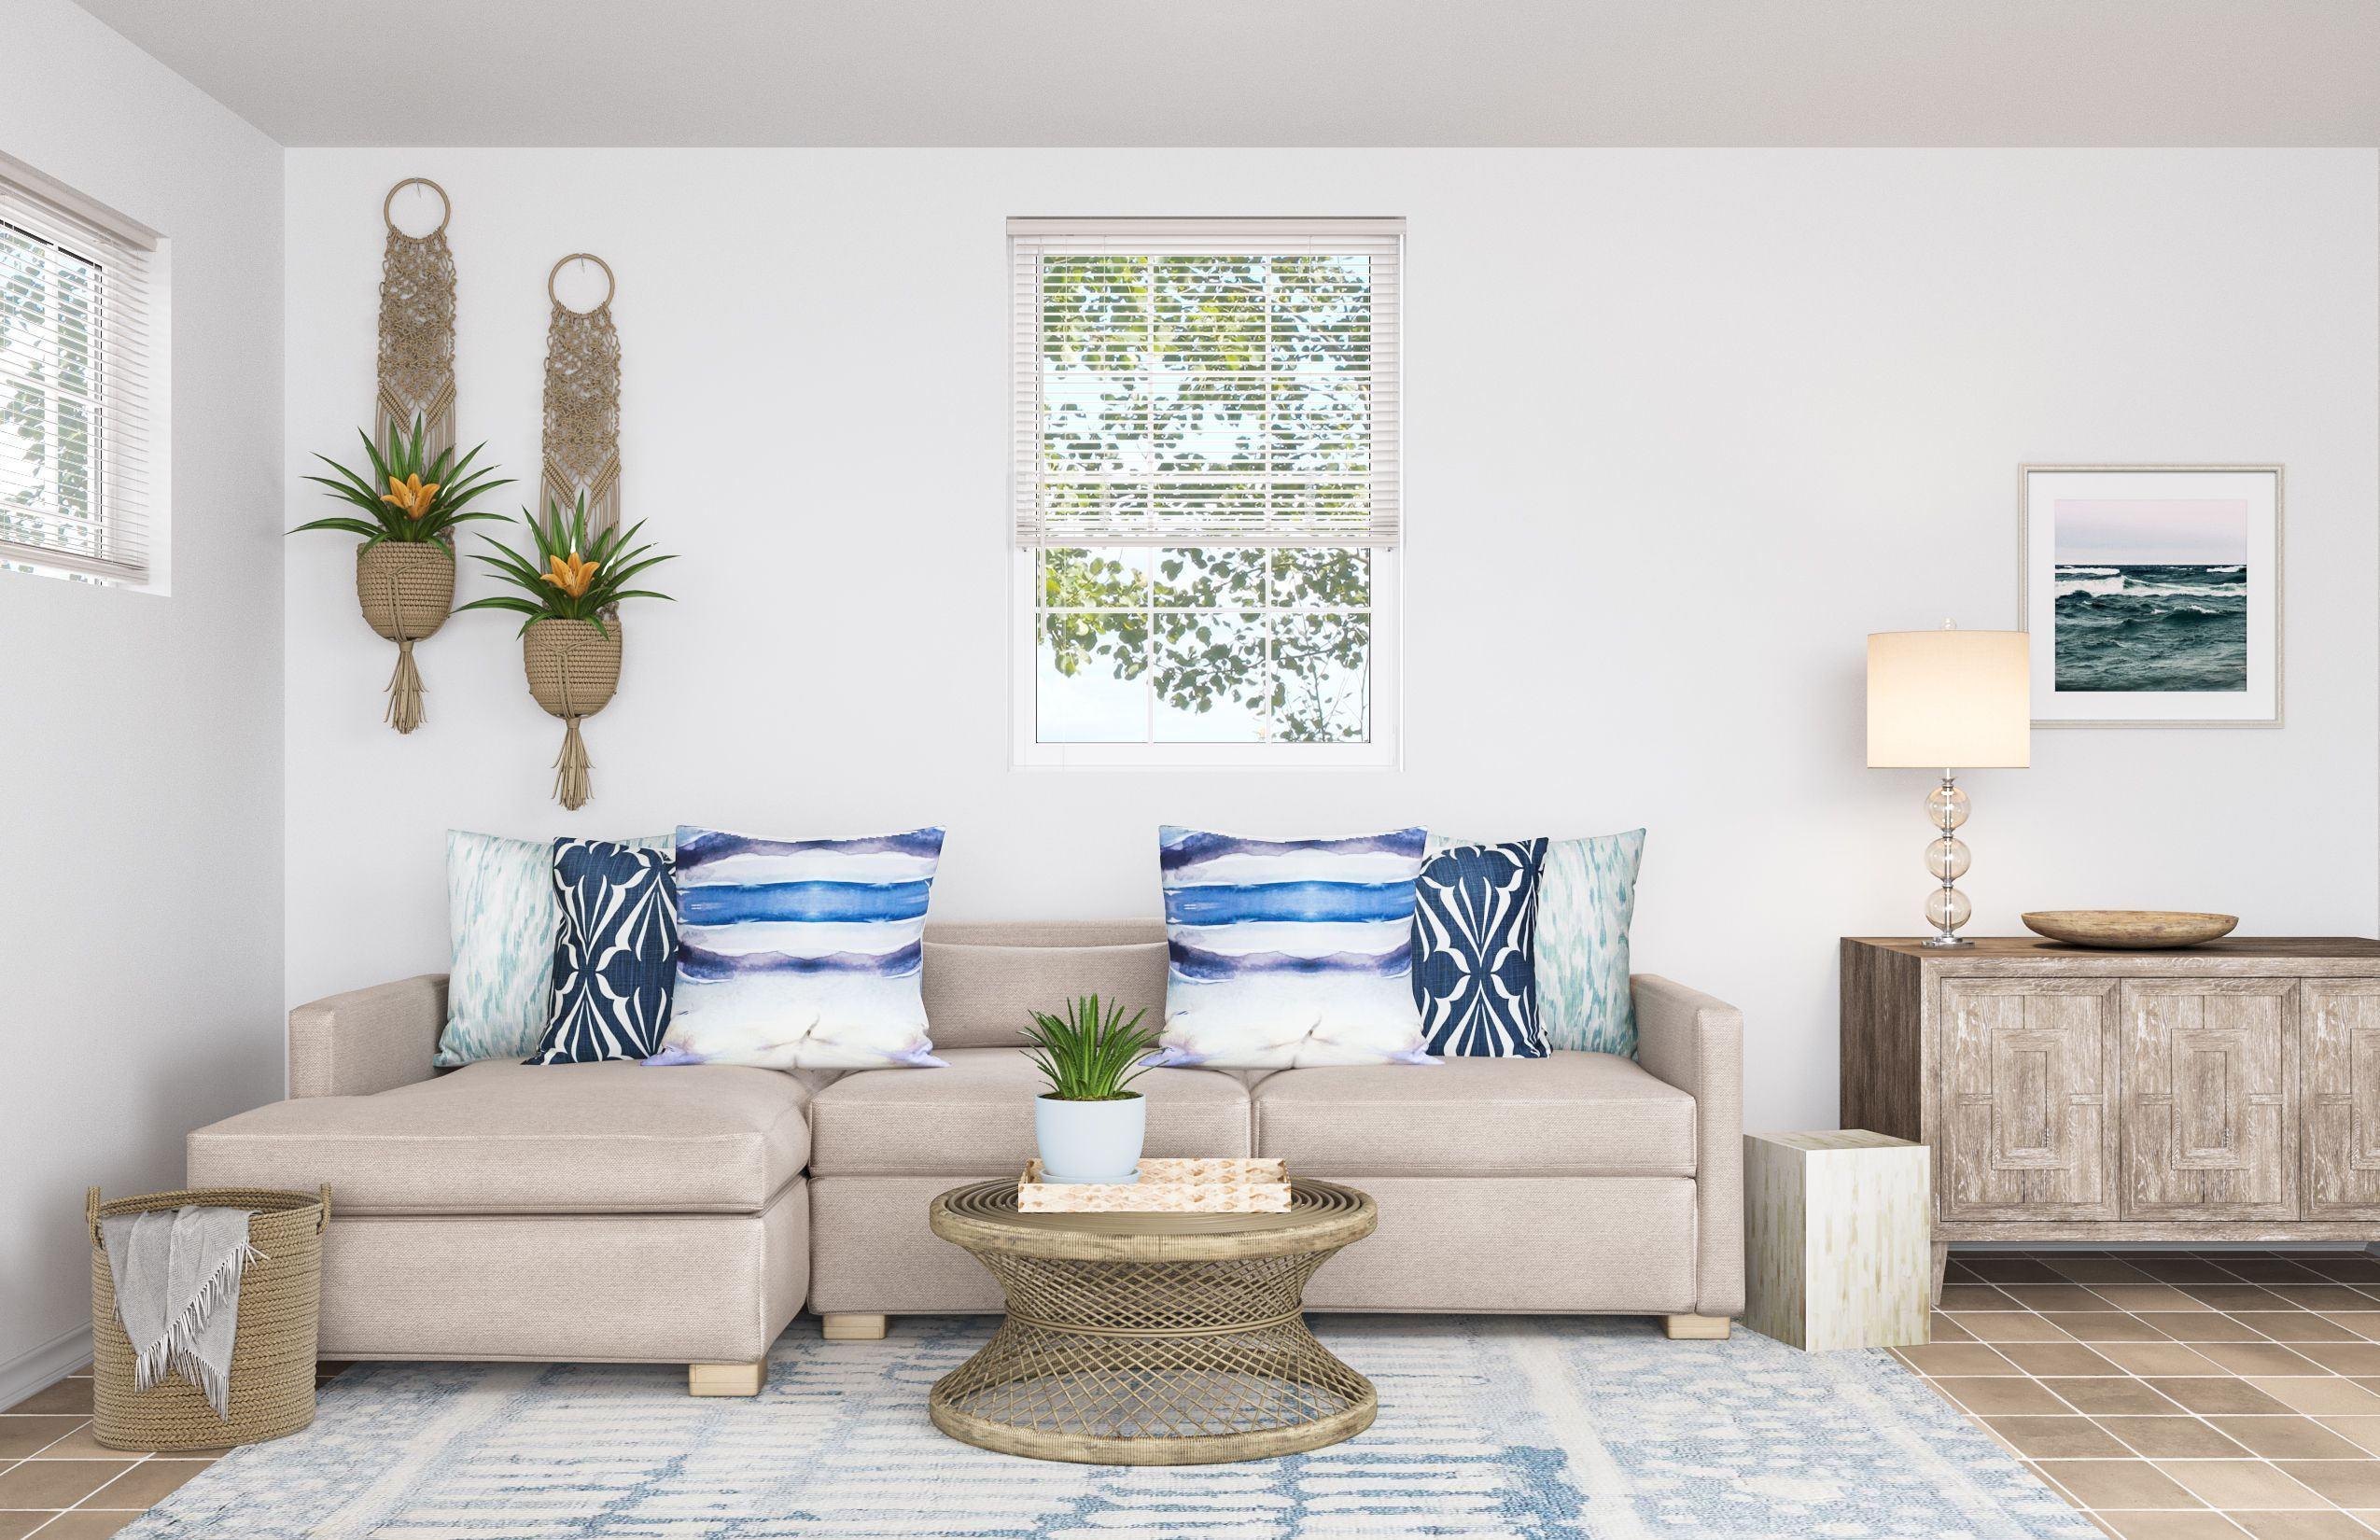 Coastal, Transitional Living Room Design by Havenly Interior Designer Leah #havenlylivingroom Coastal, Transitional Living Room by Havenly #havenlylivingroom